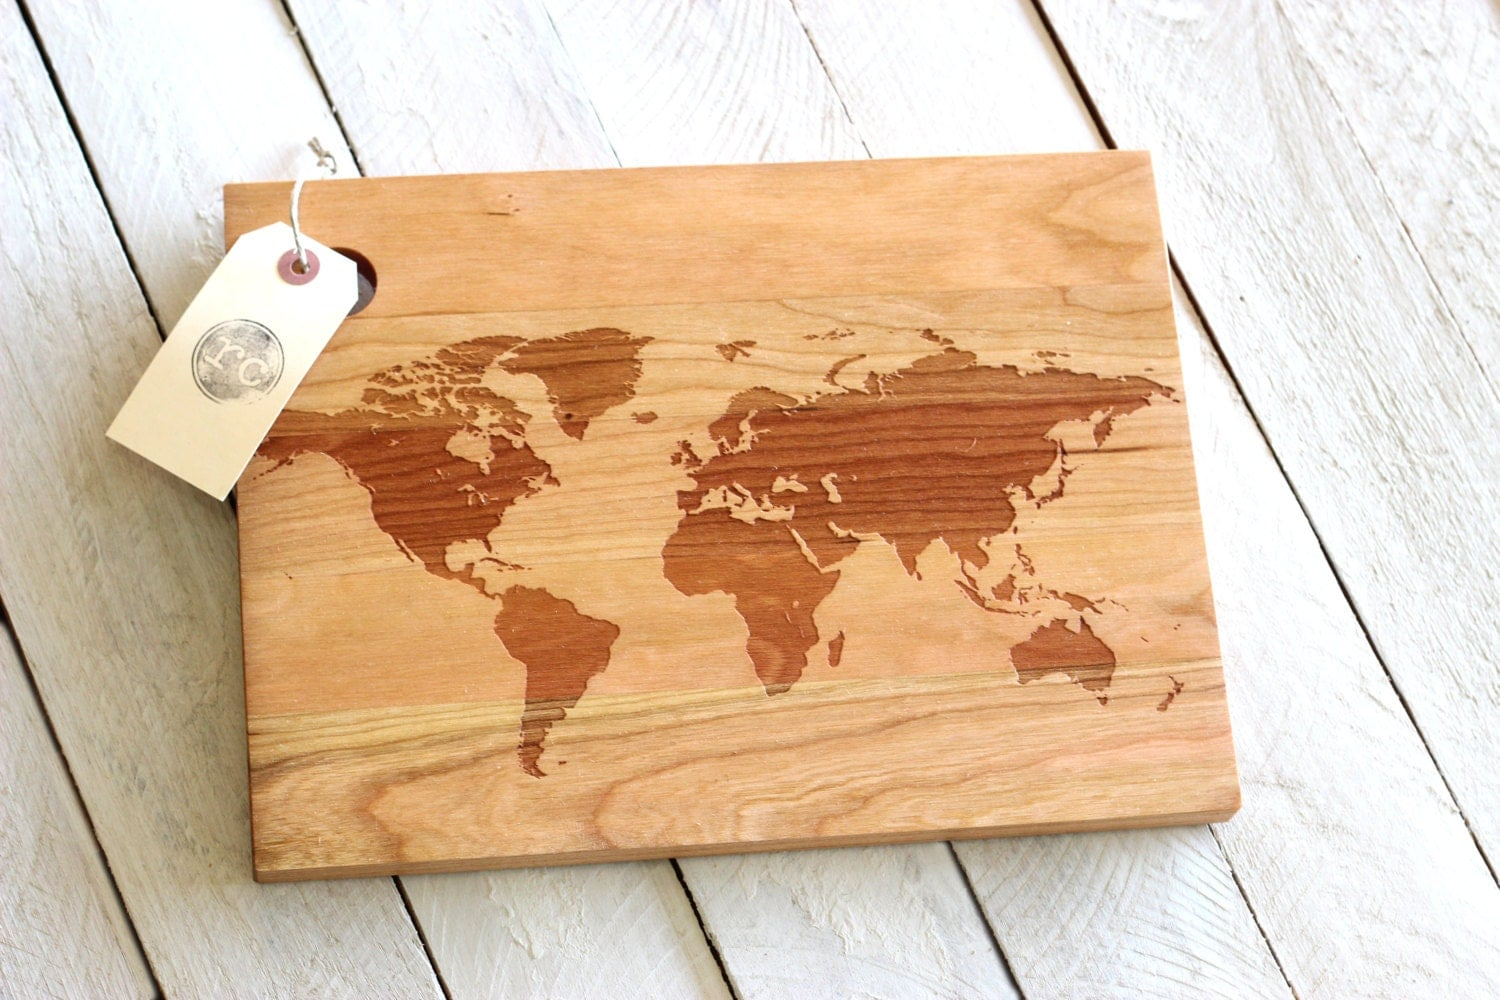 Rustic Wood Boards ~ World map cutting board rustic modern wooden design